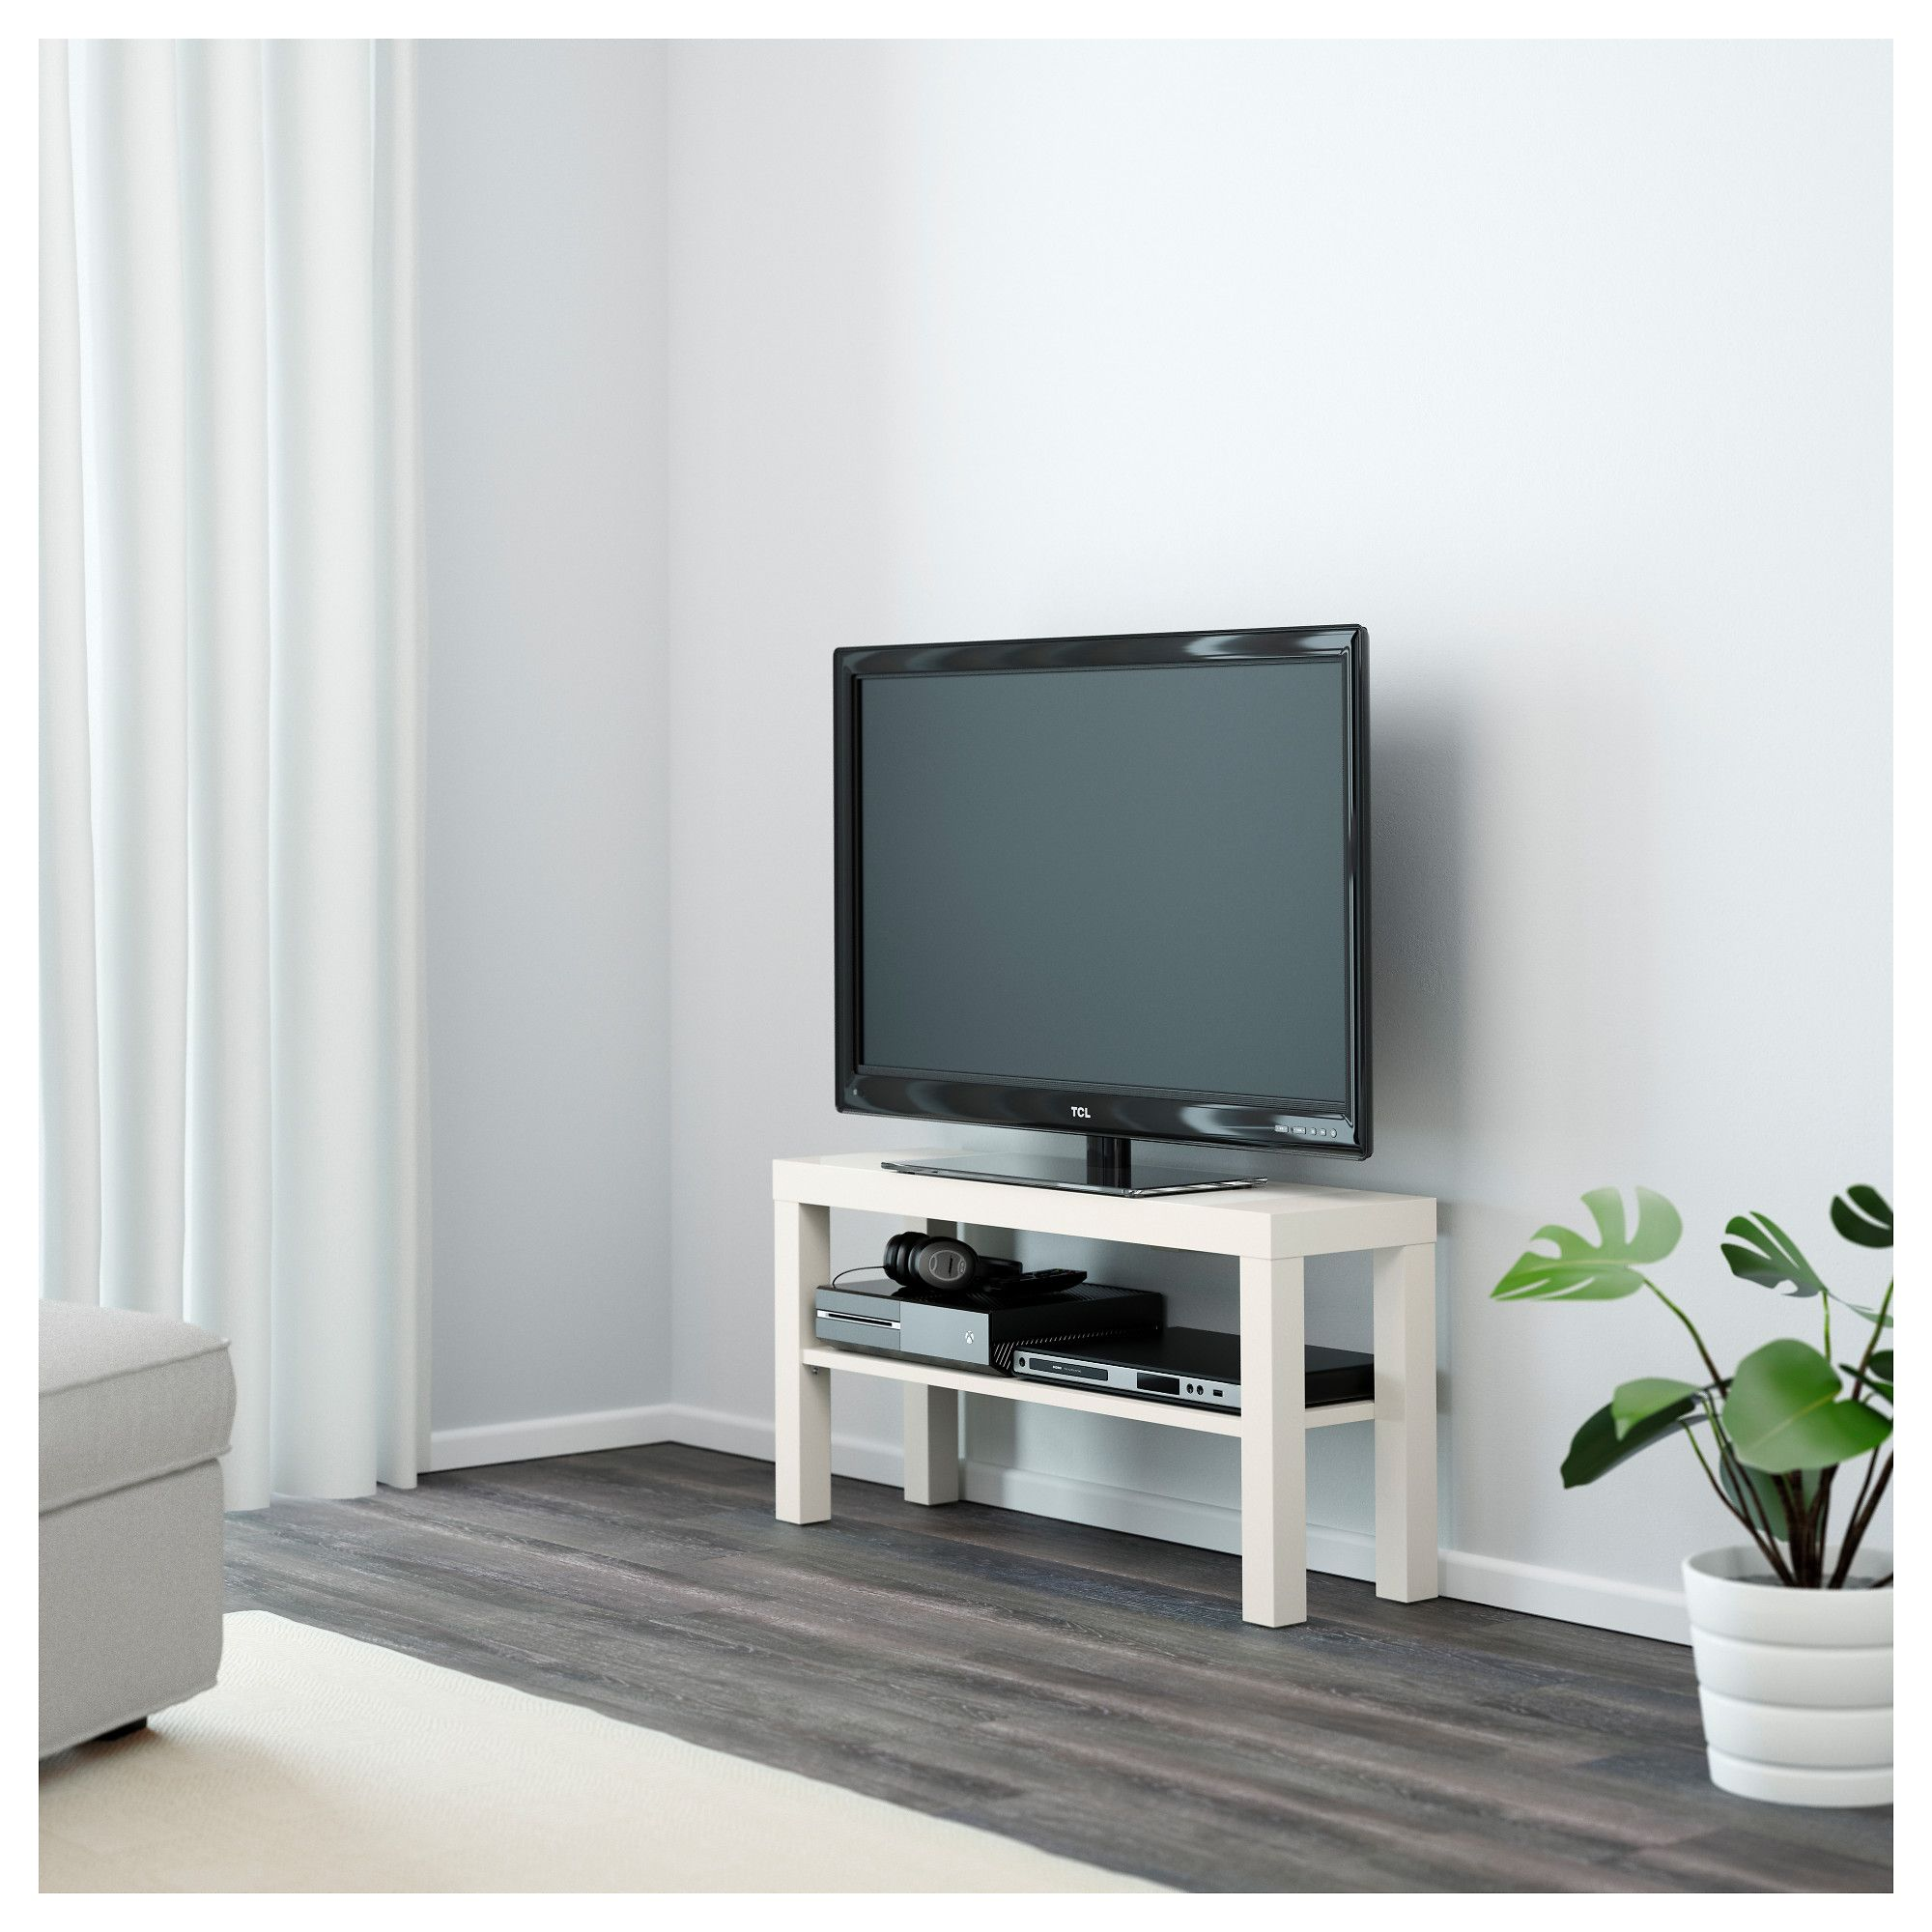 LACK TV bench White 90x26 cm | Tv bench, Bench and Organizing